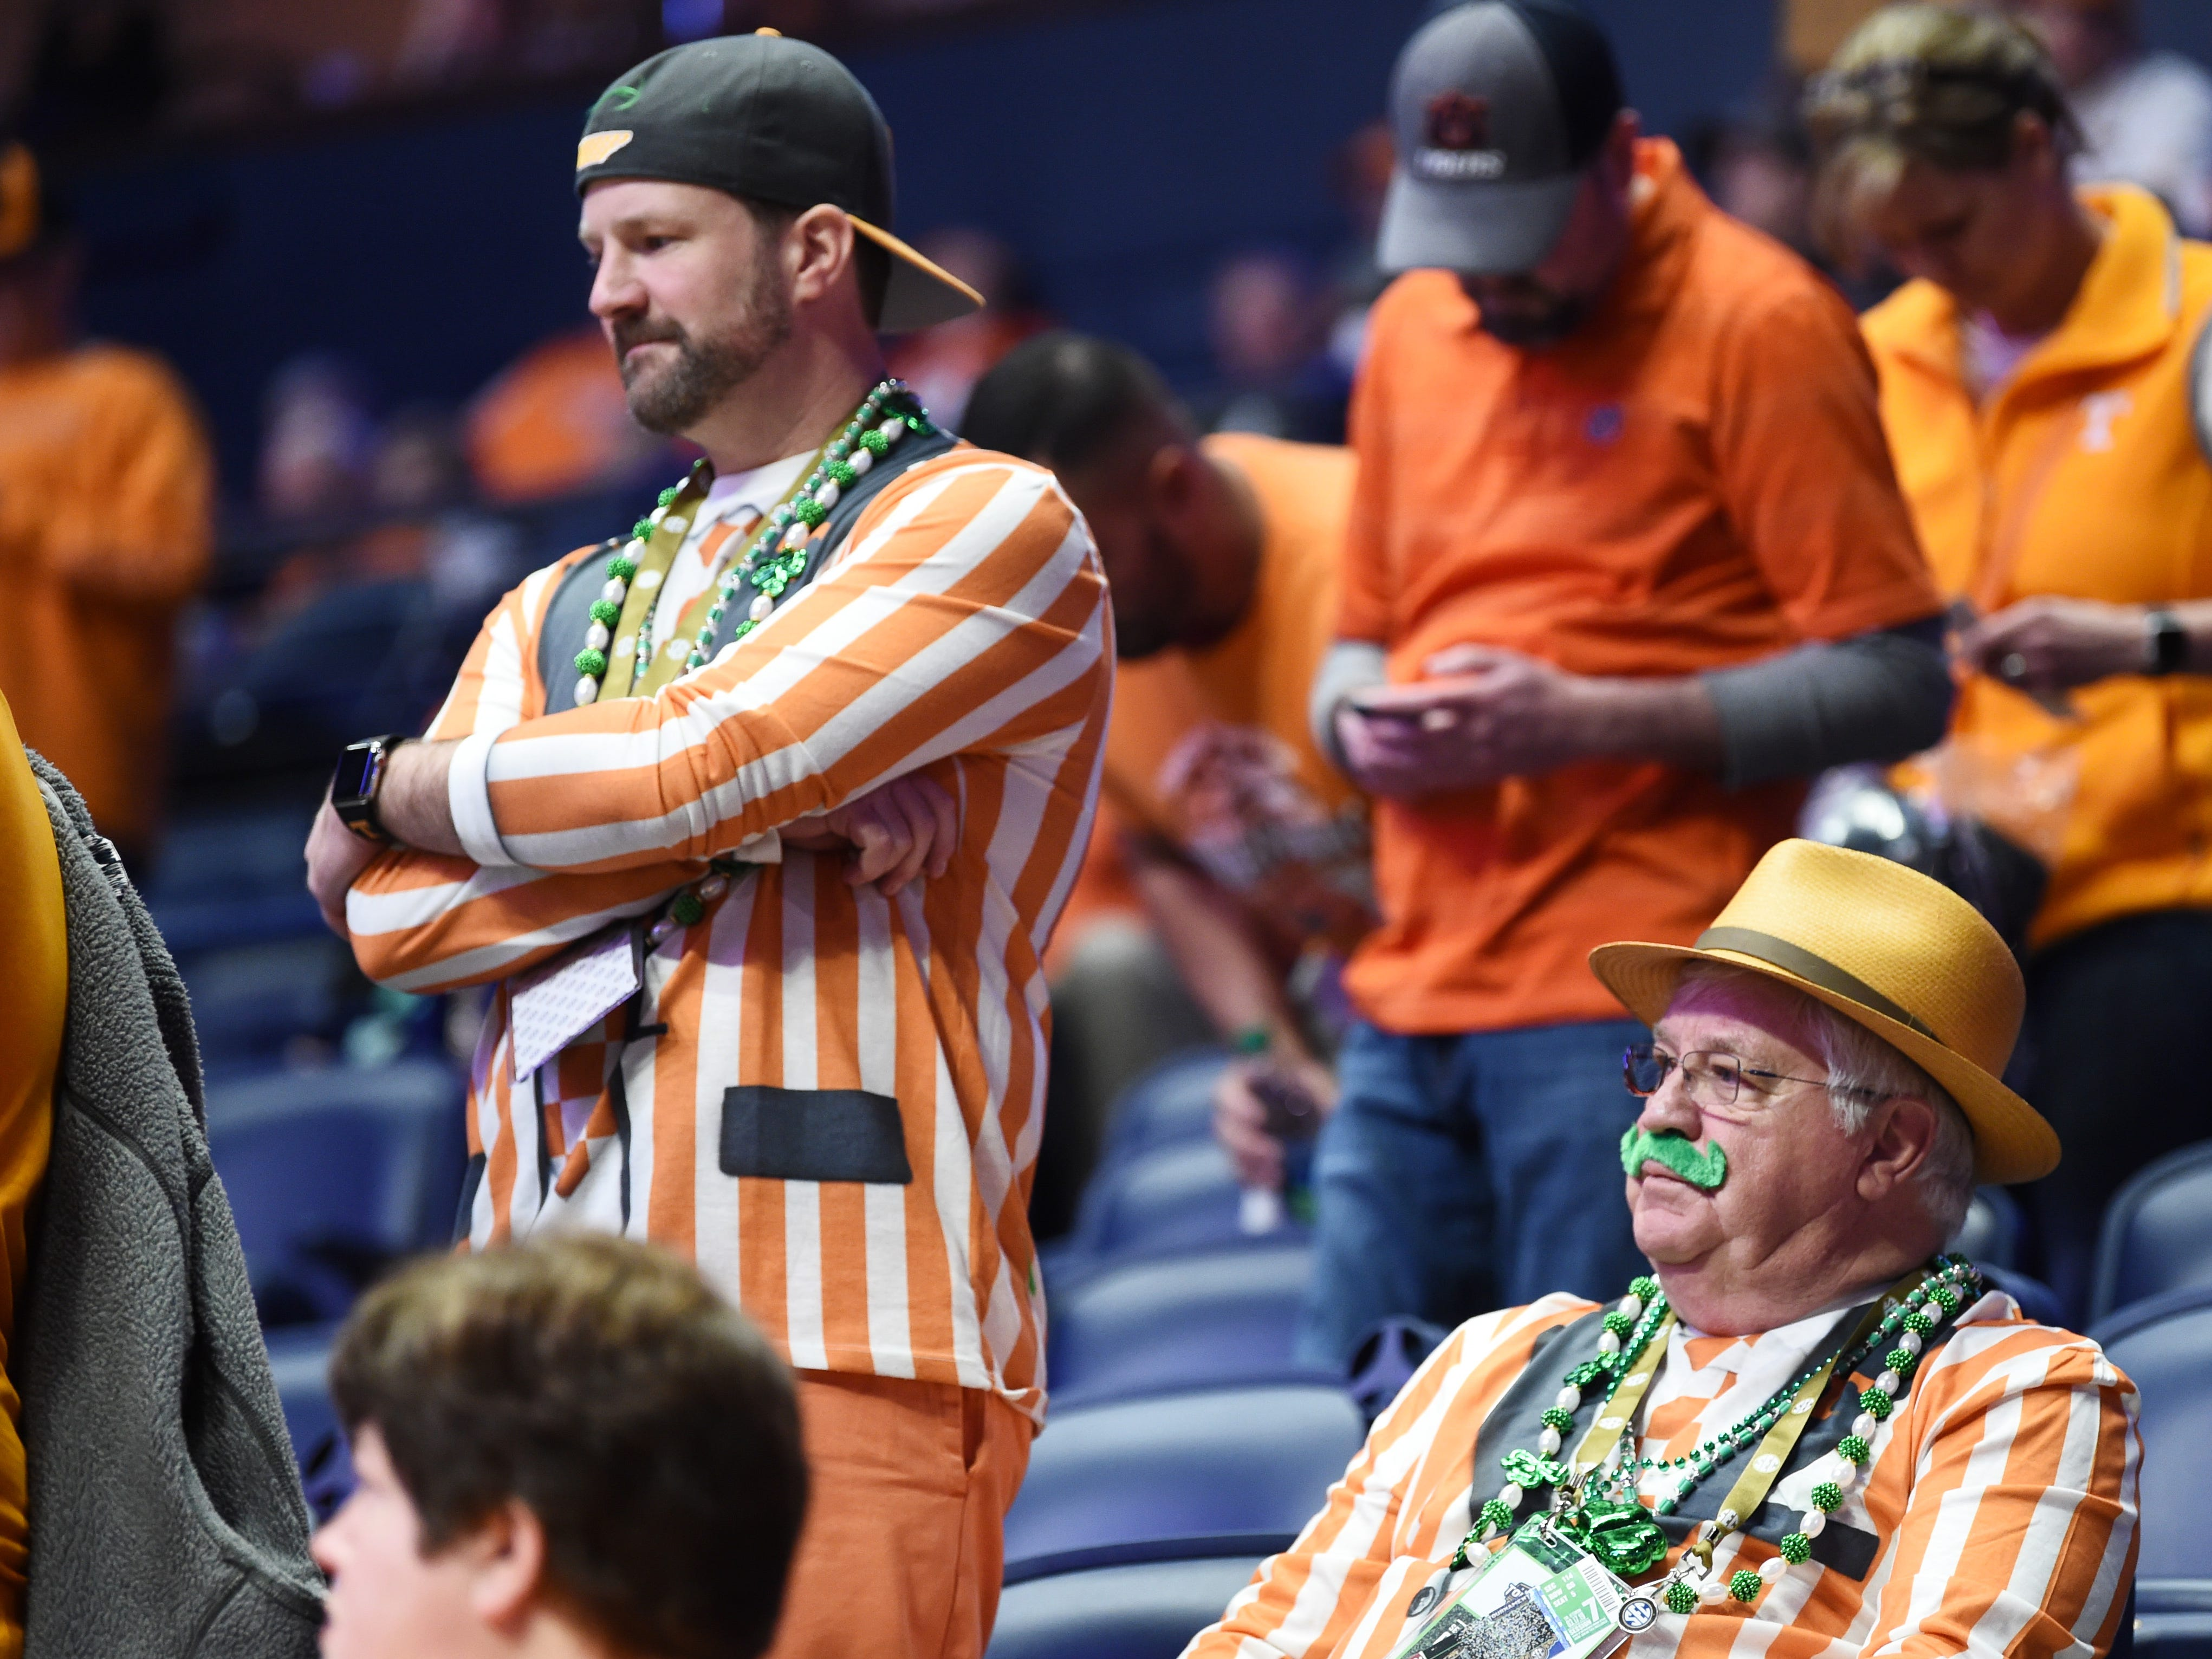 Tennessee fans wait for the start of the SEC Men's Basketball Tournament championship game against Auburn at Bridgestone Arena in Nashville, Tenn., Sunday, March 17, 2019.